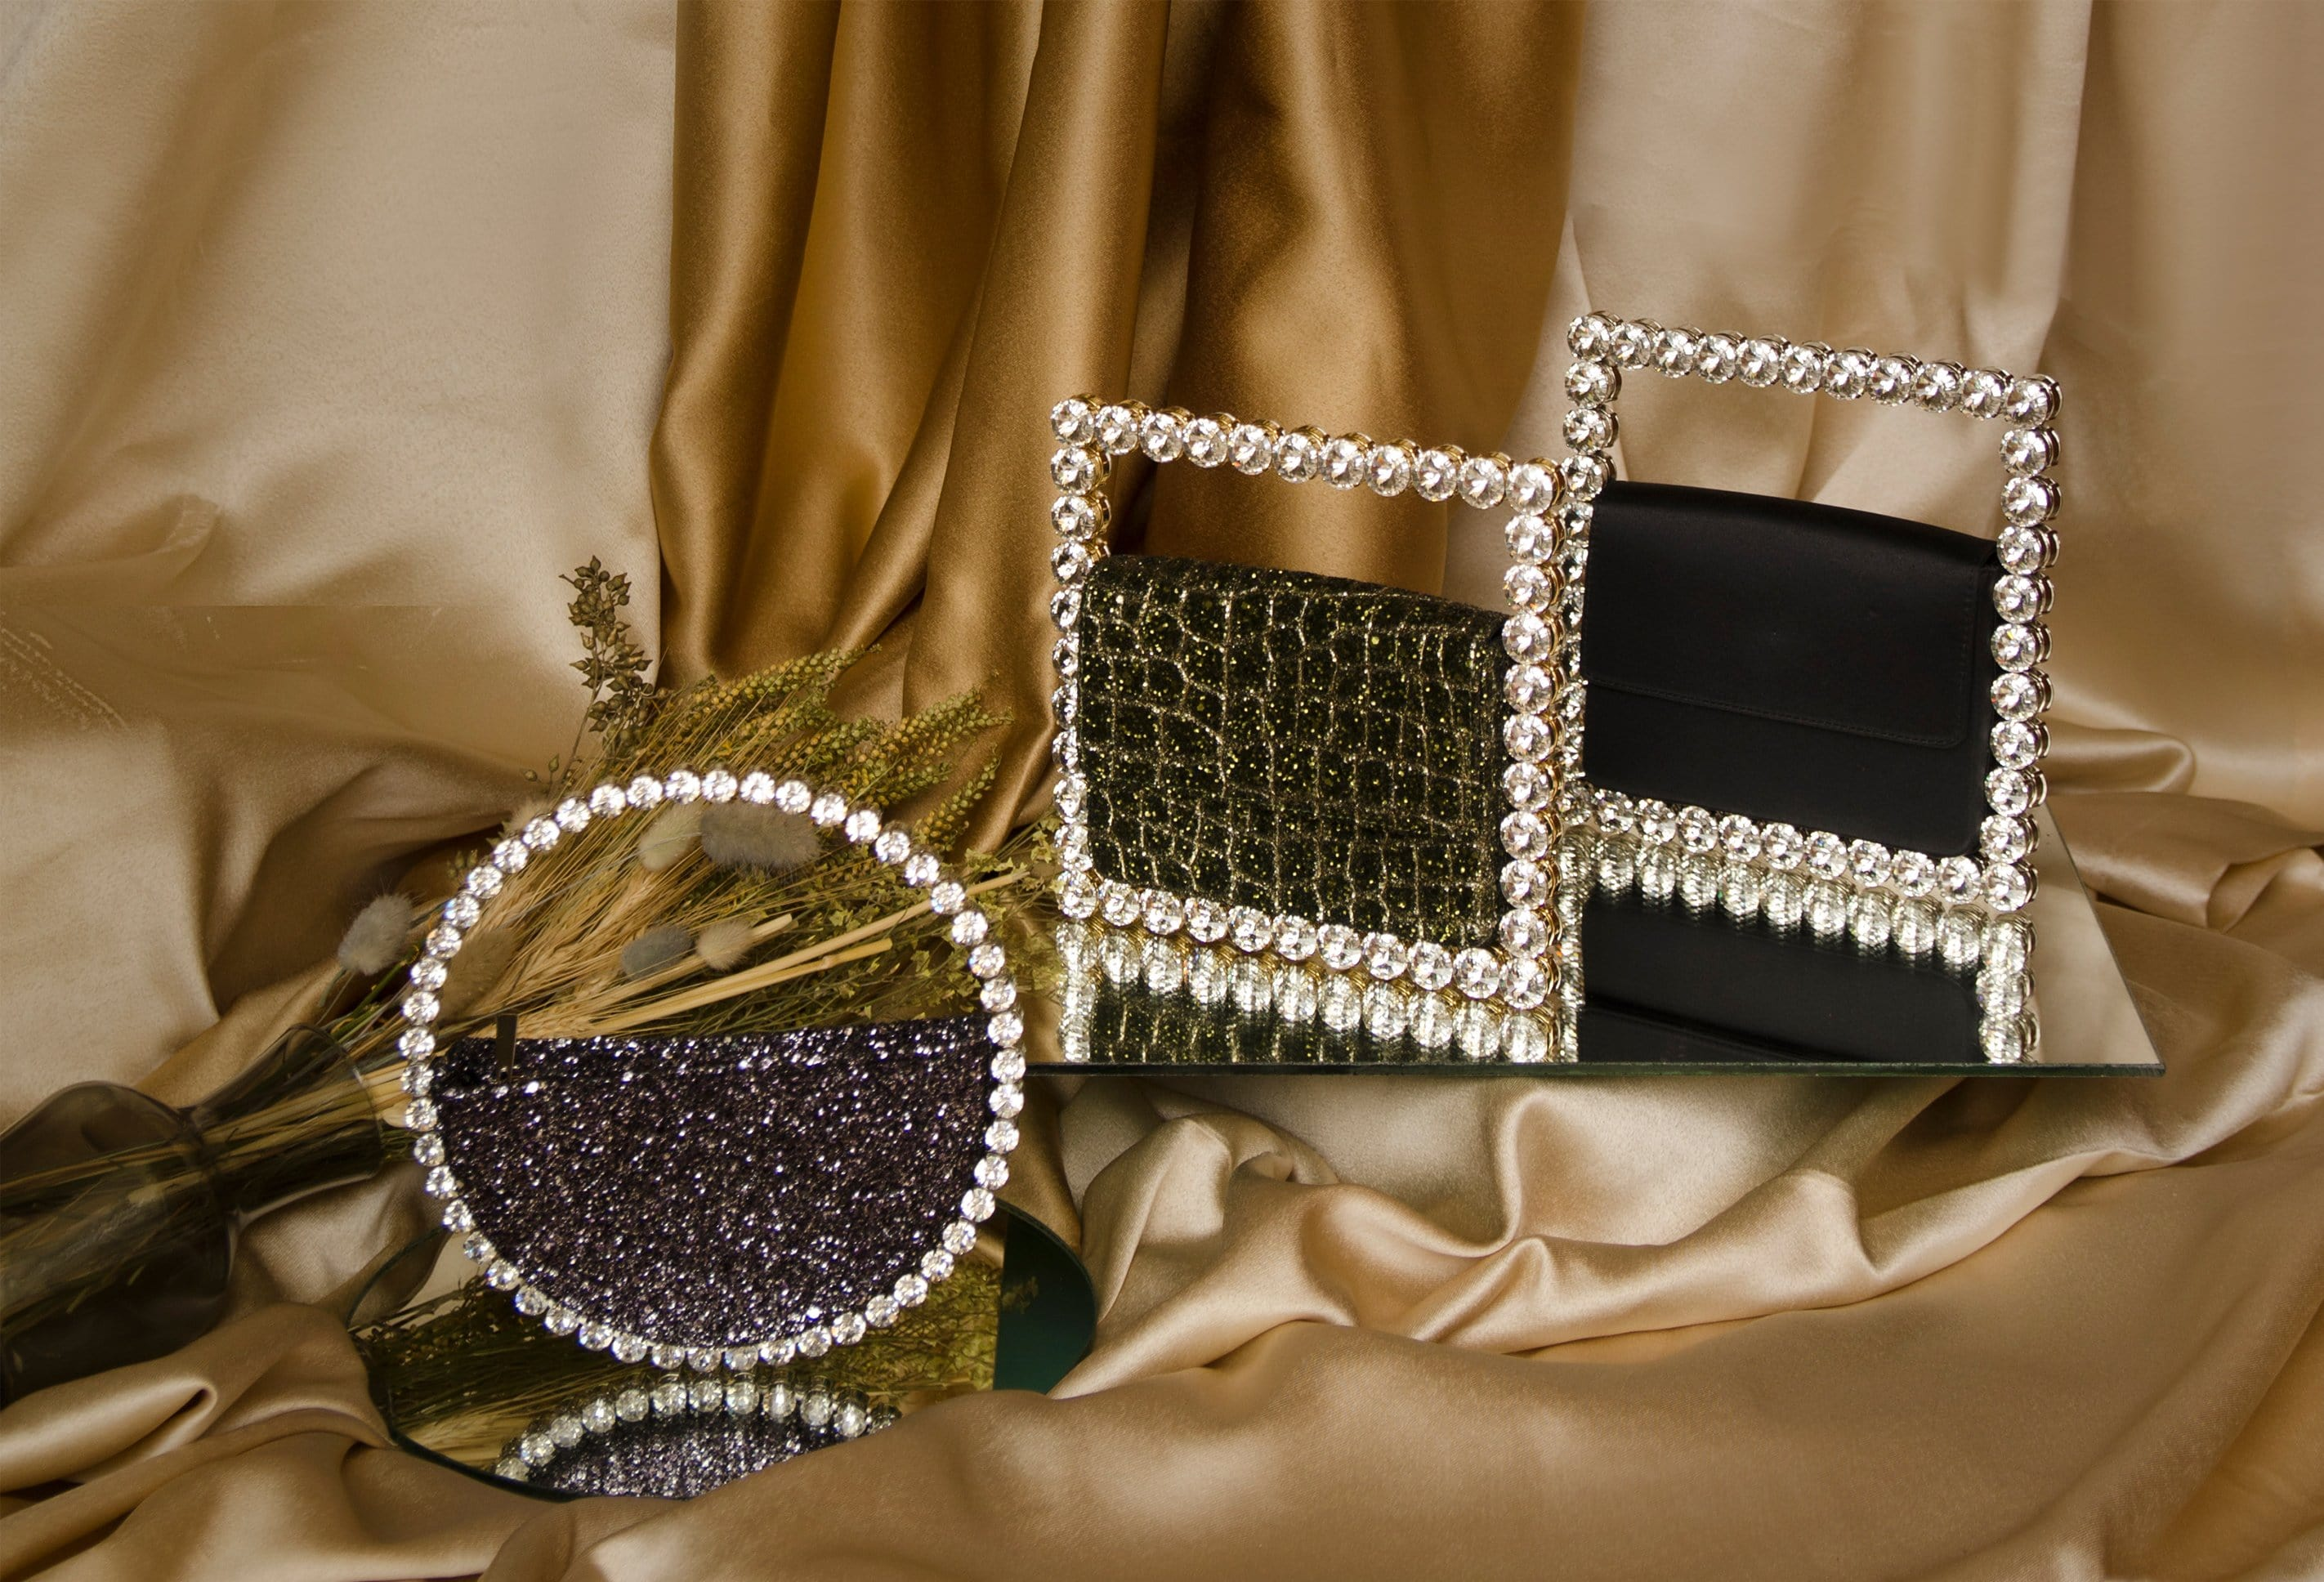 L'alingi London Autumn-Winter 2020 Lookbook cover with 3 crystal embellished evening clutches